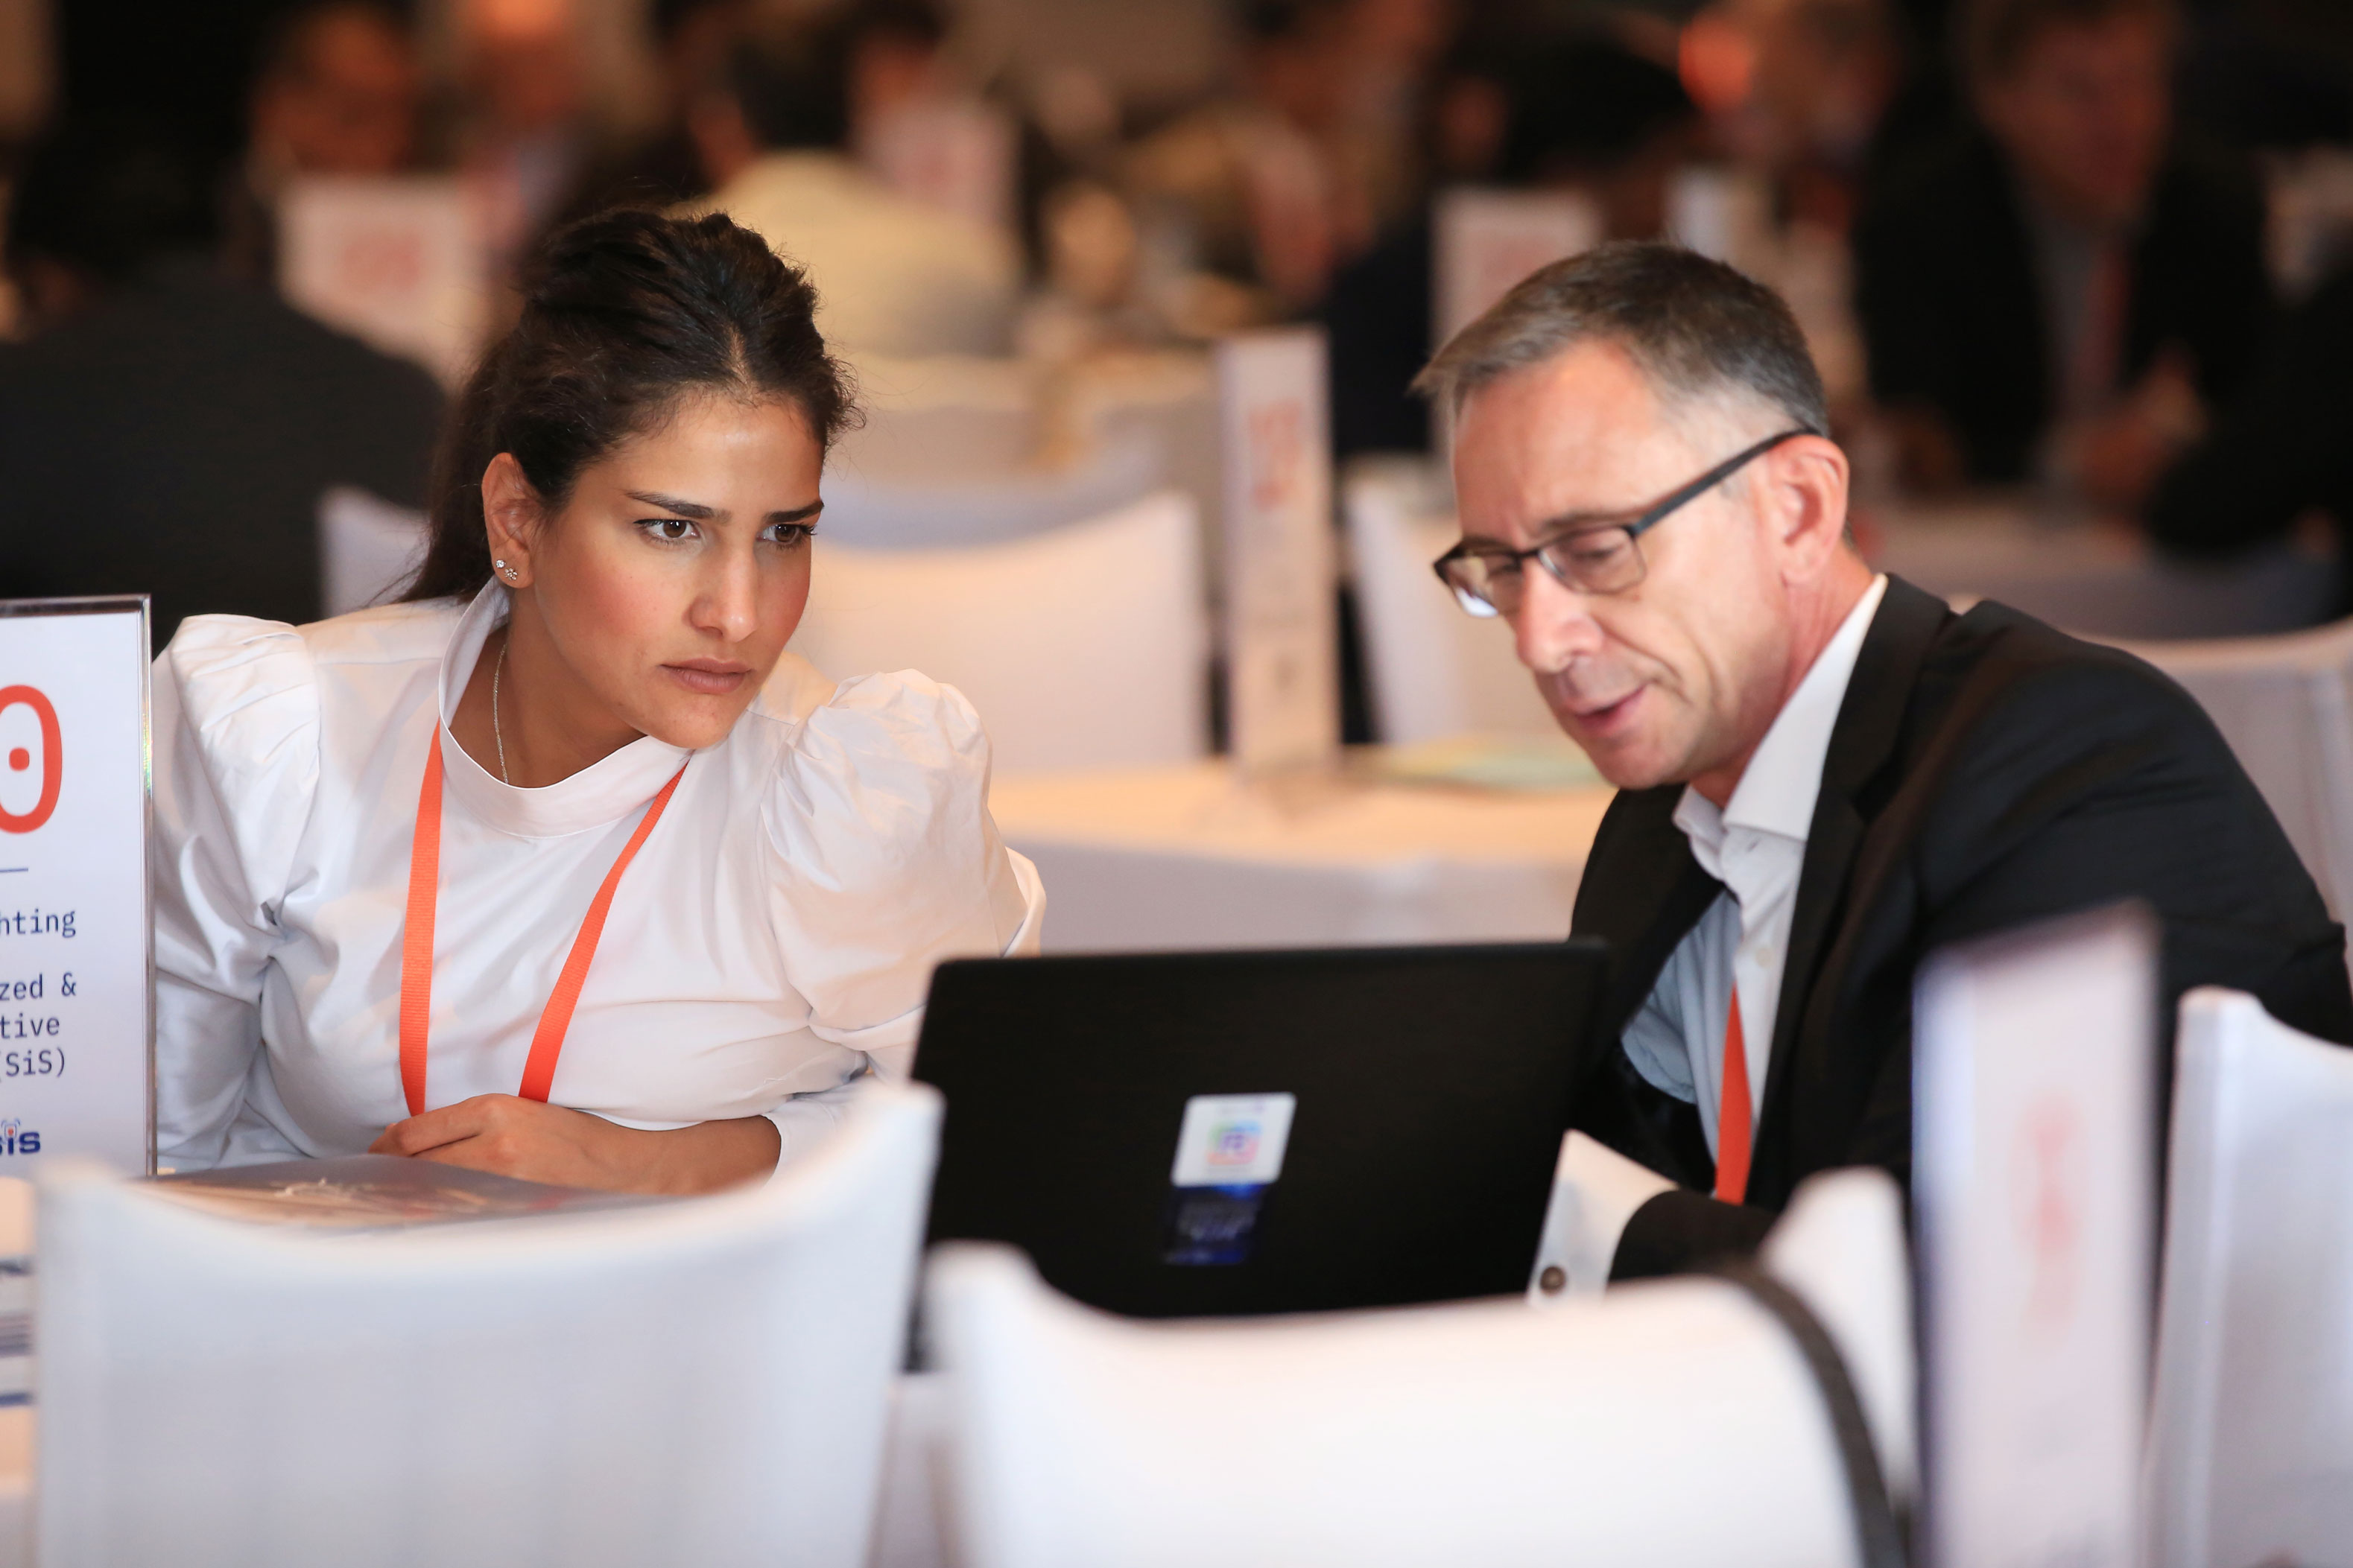 The Stakeholder Conference - Hospitality Conferences in 2020